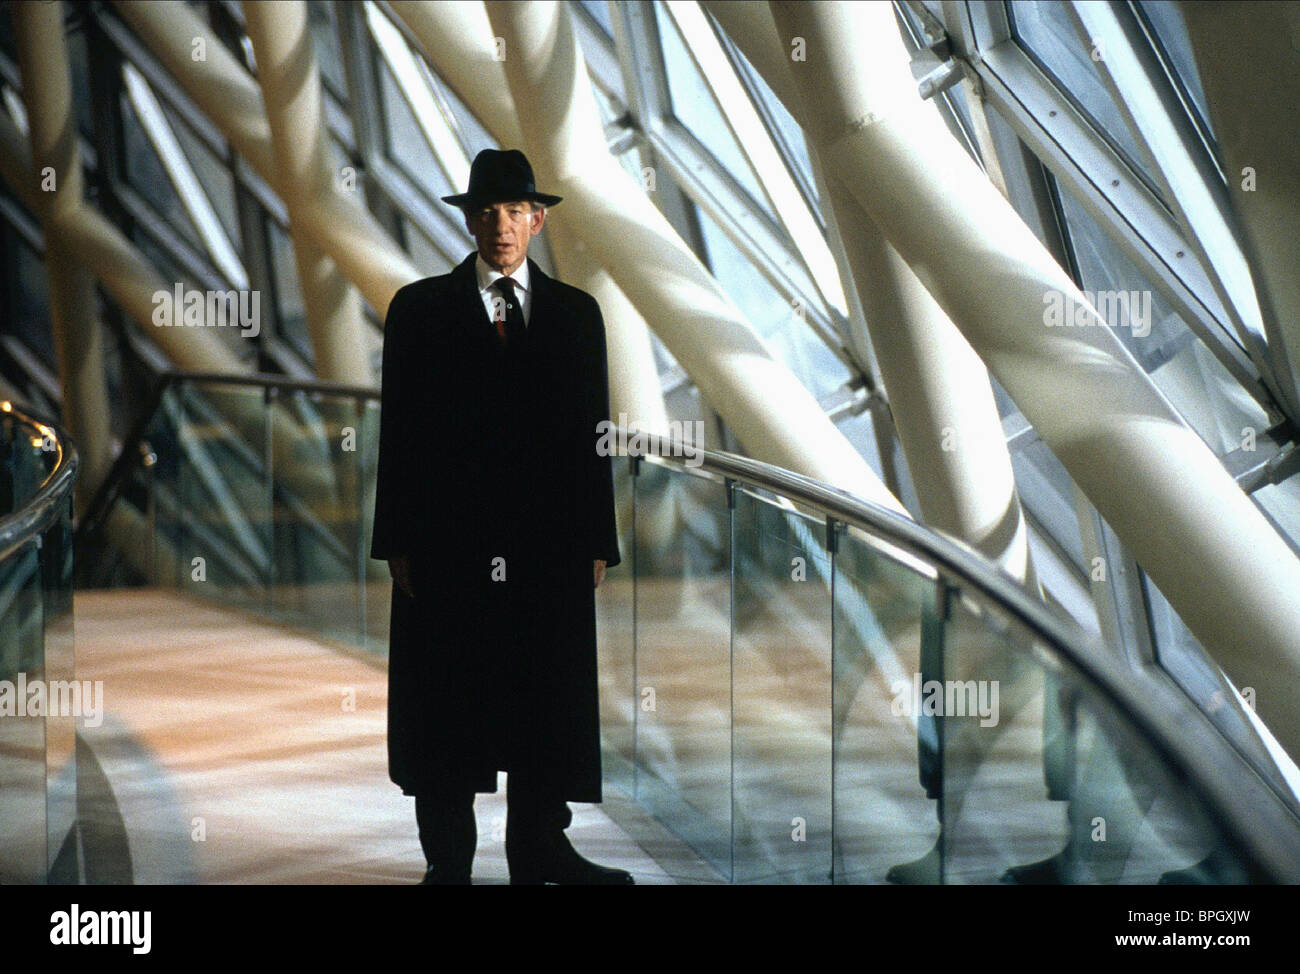 SIR IAN MCKELLEN X-MEN (2000) - Stock Image